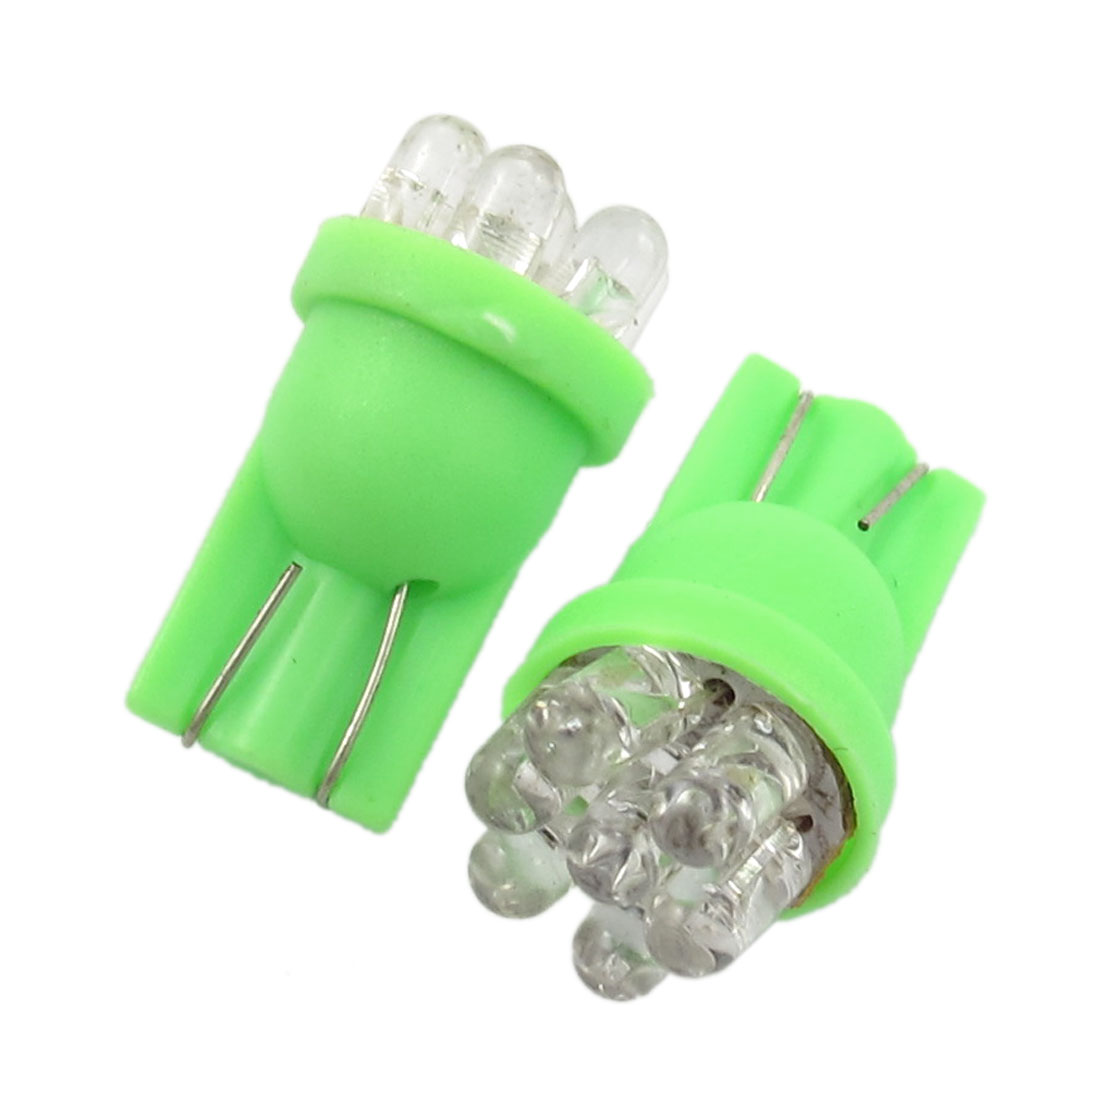 2 x Green 7 LED Light T10 194 168 W5W Side Marker Lamp Bulbs for Vehicle